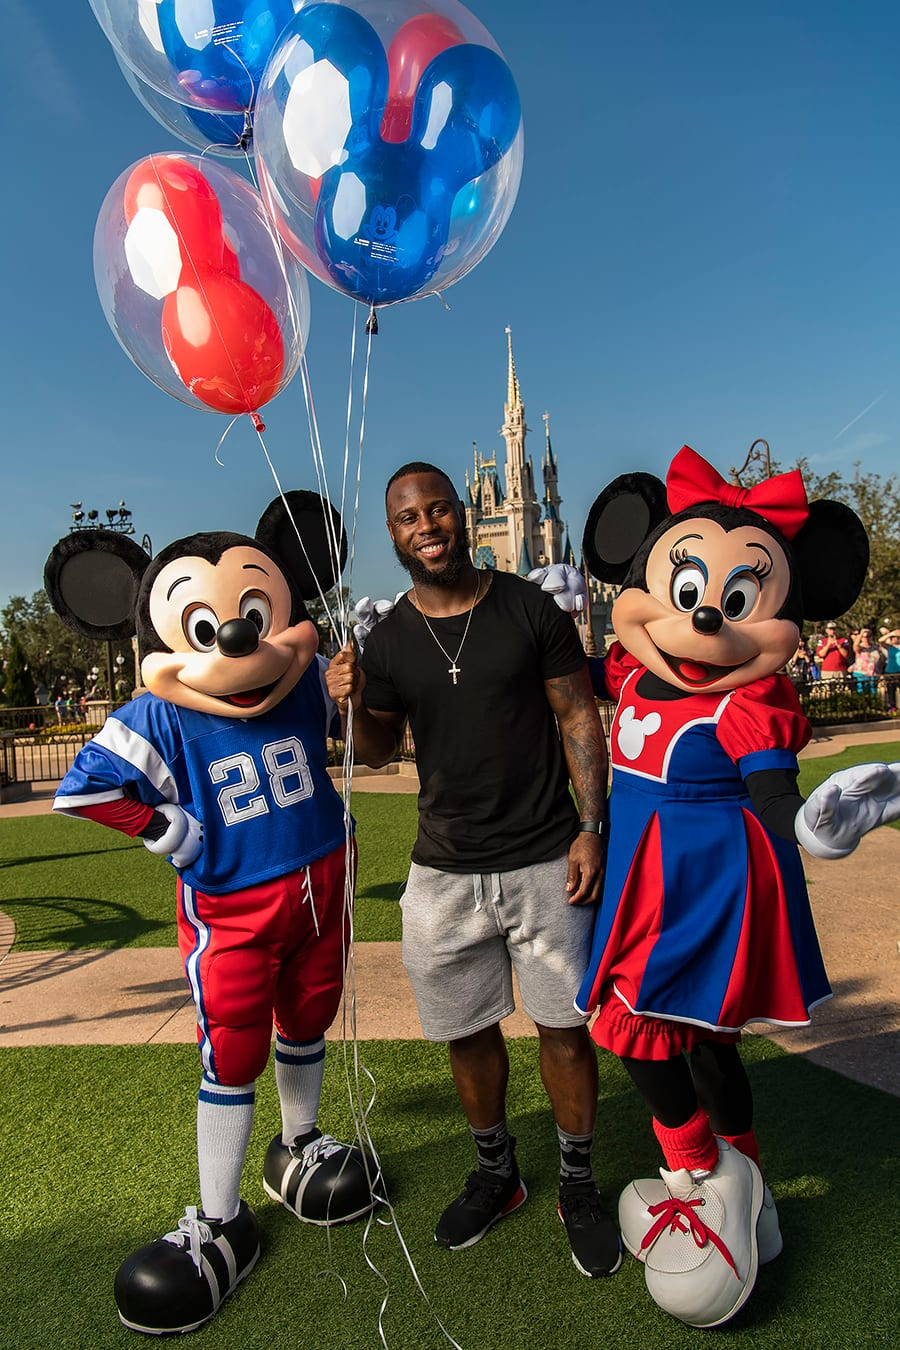 Super Bowl Hero James White Marks 30th Year of Disney's Super Bowl Tradition